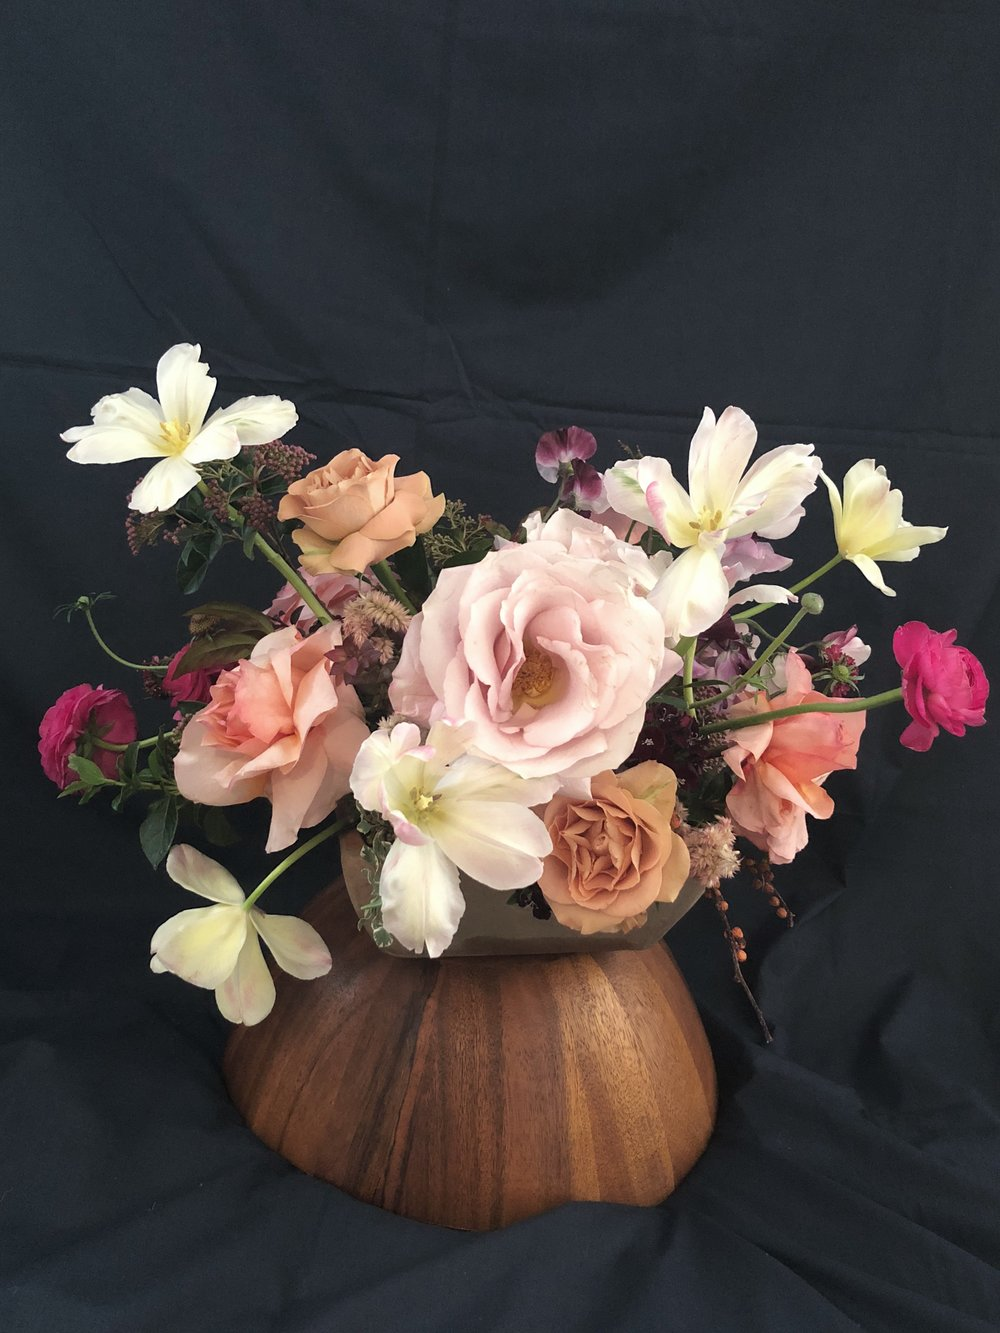 florals in a coconut vase